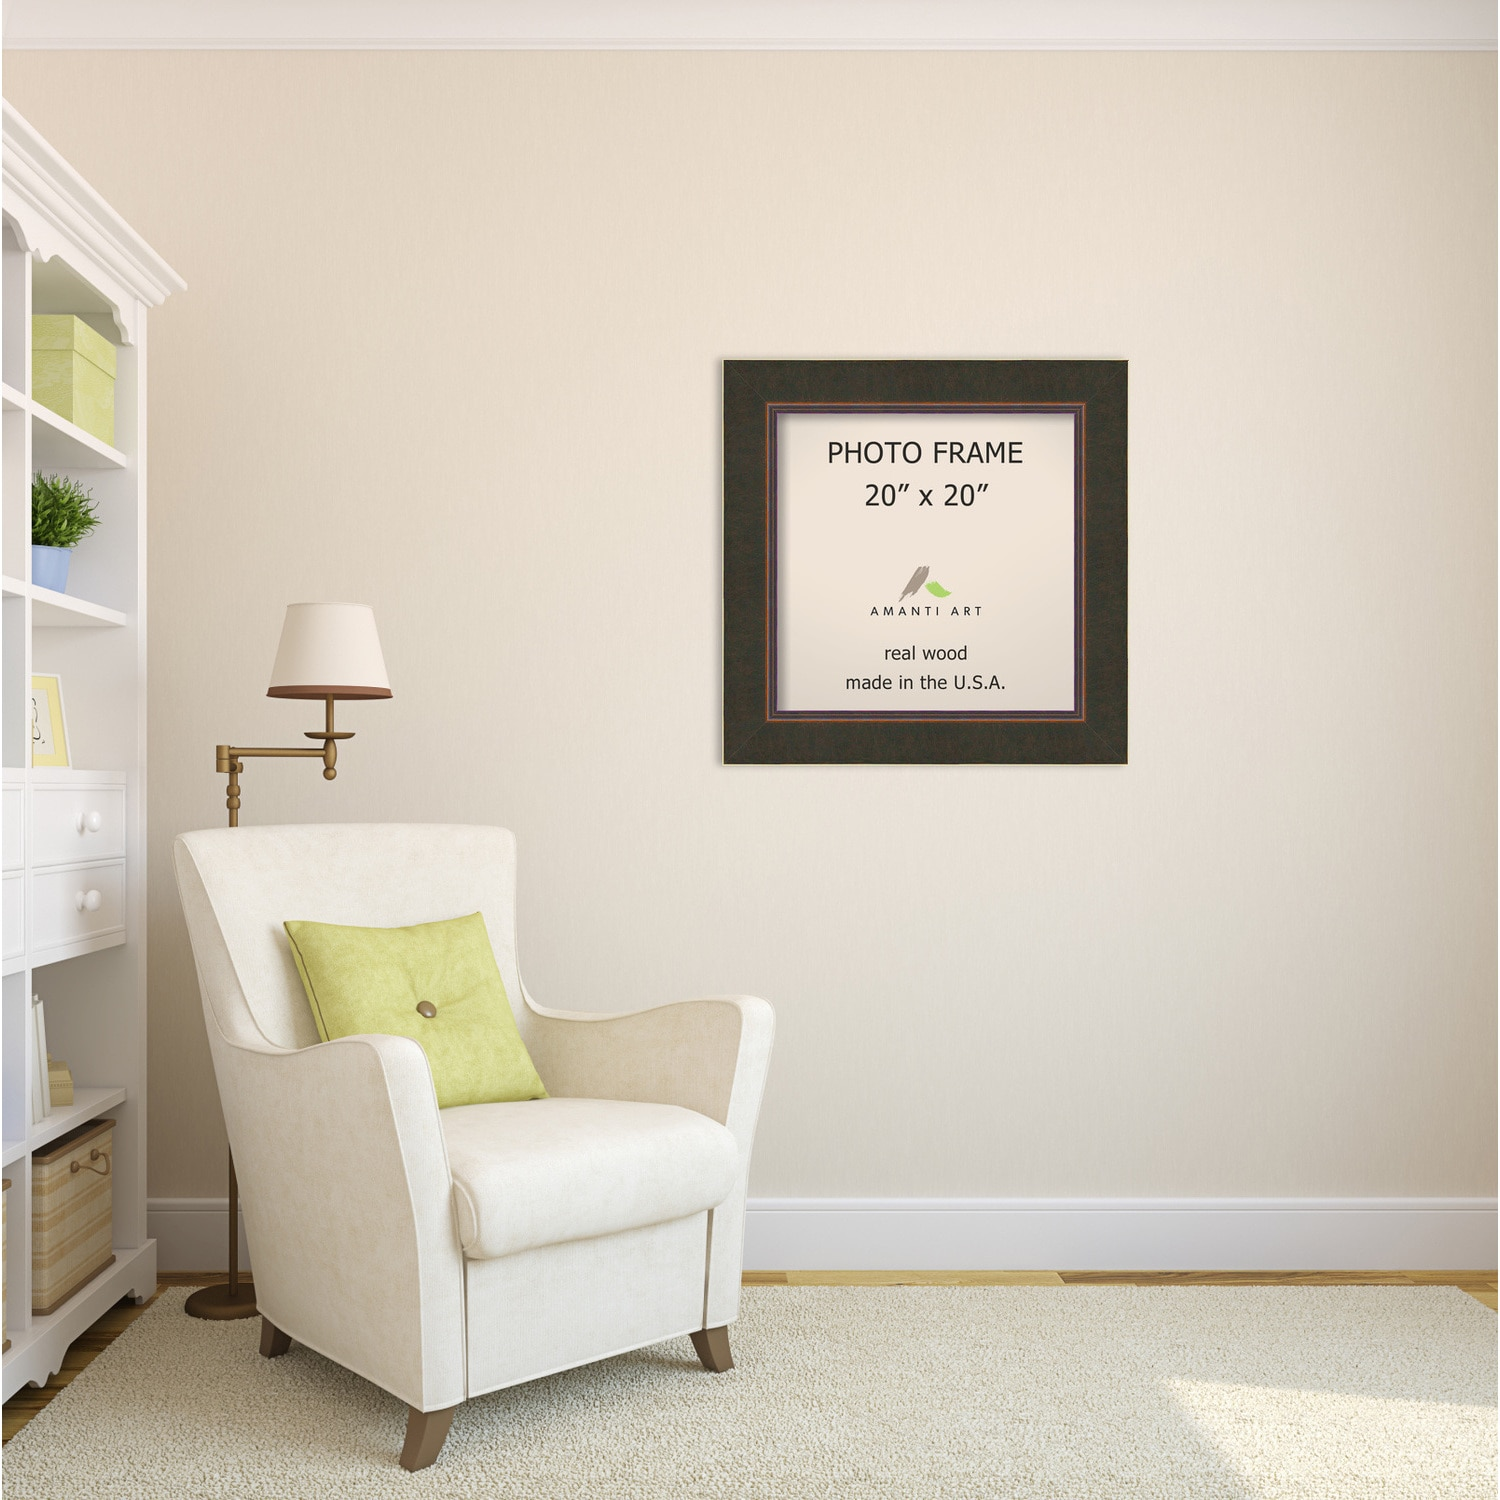 Milano Bronze Photo Frame 26 x 26-inch - Free Shipping Today ...